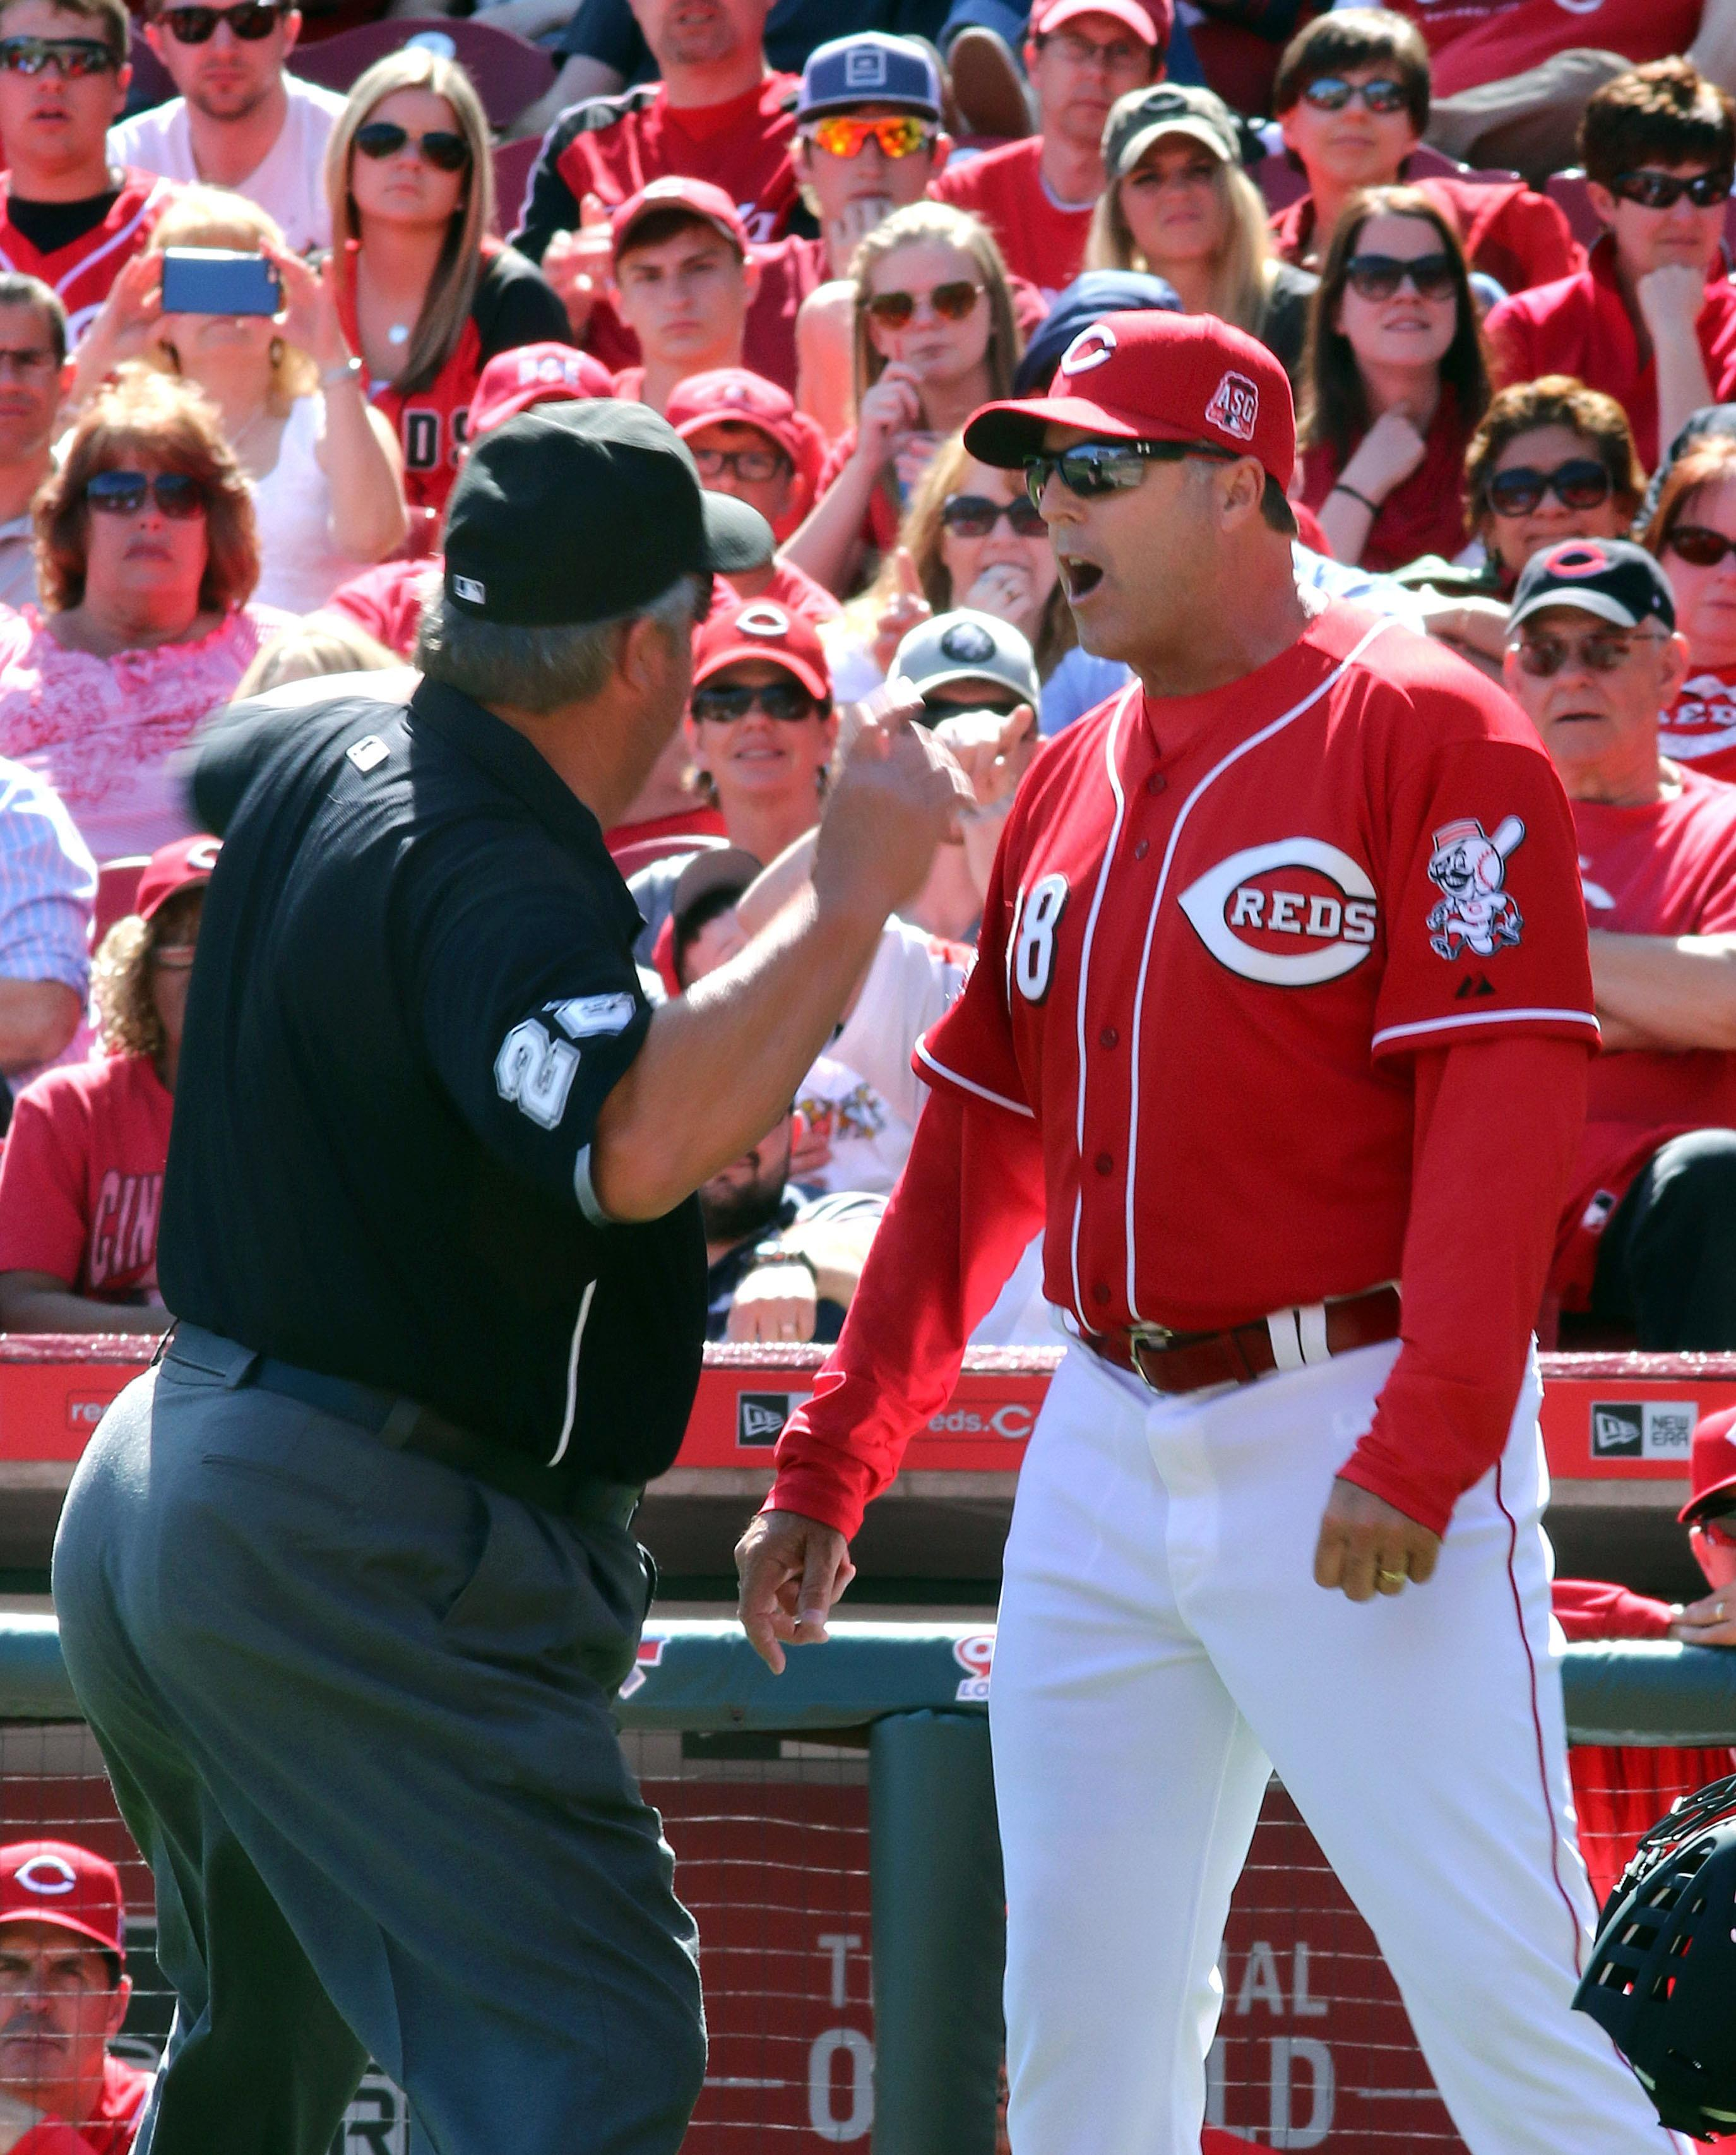 Reds' Bryan Price apologizes for language, not message